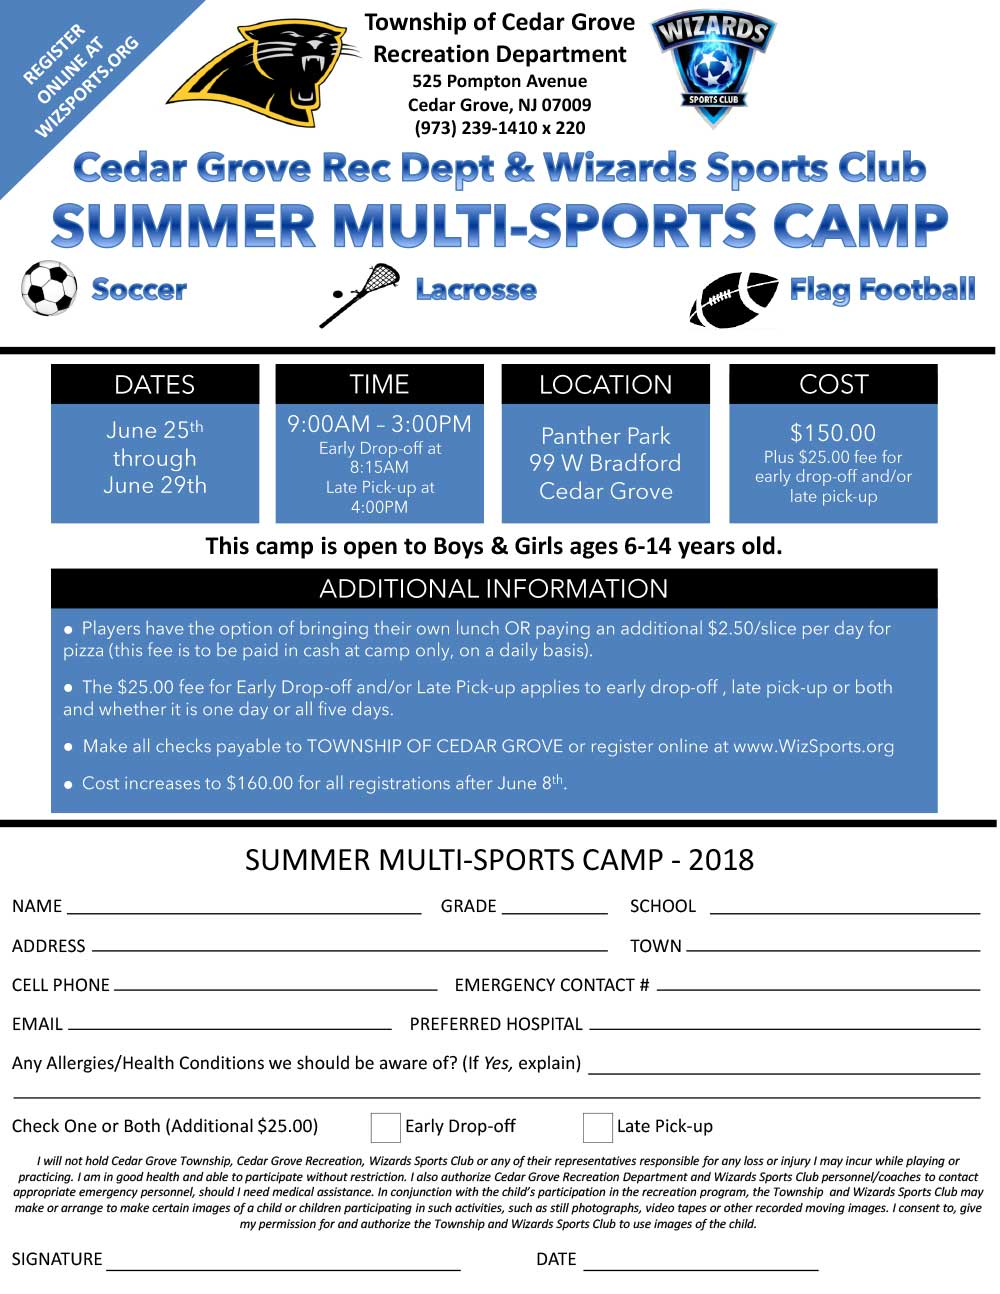 Summer 2018 Multi-Sports Camp